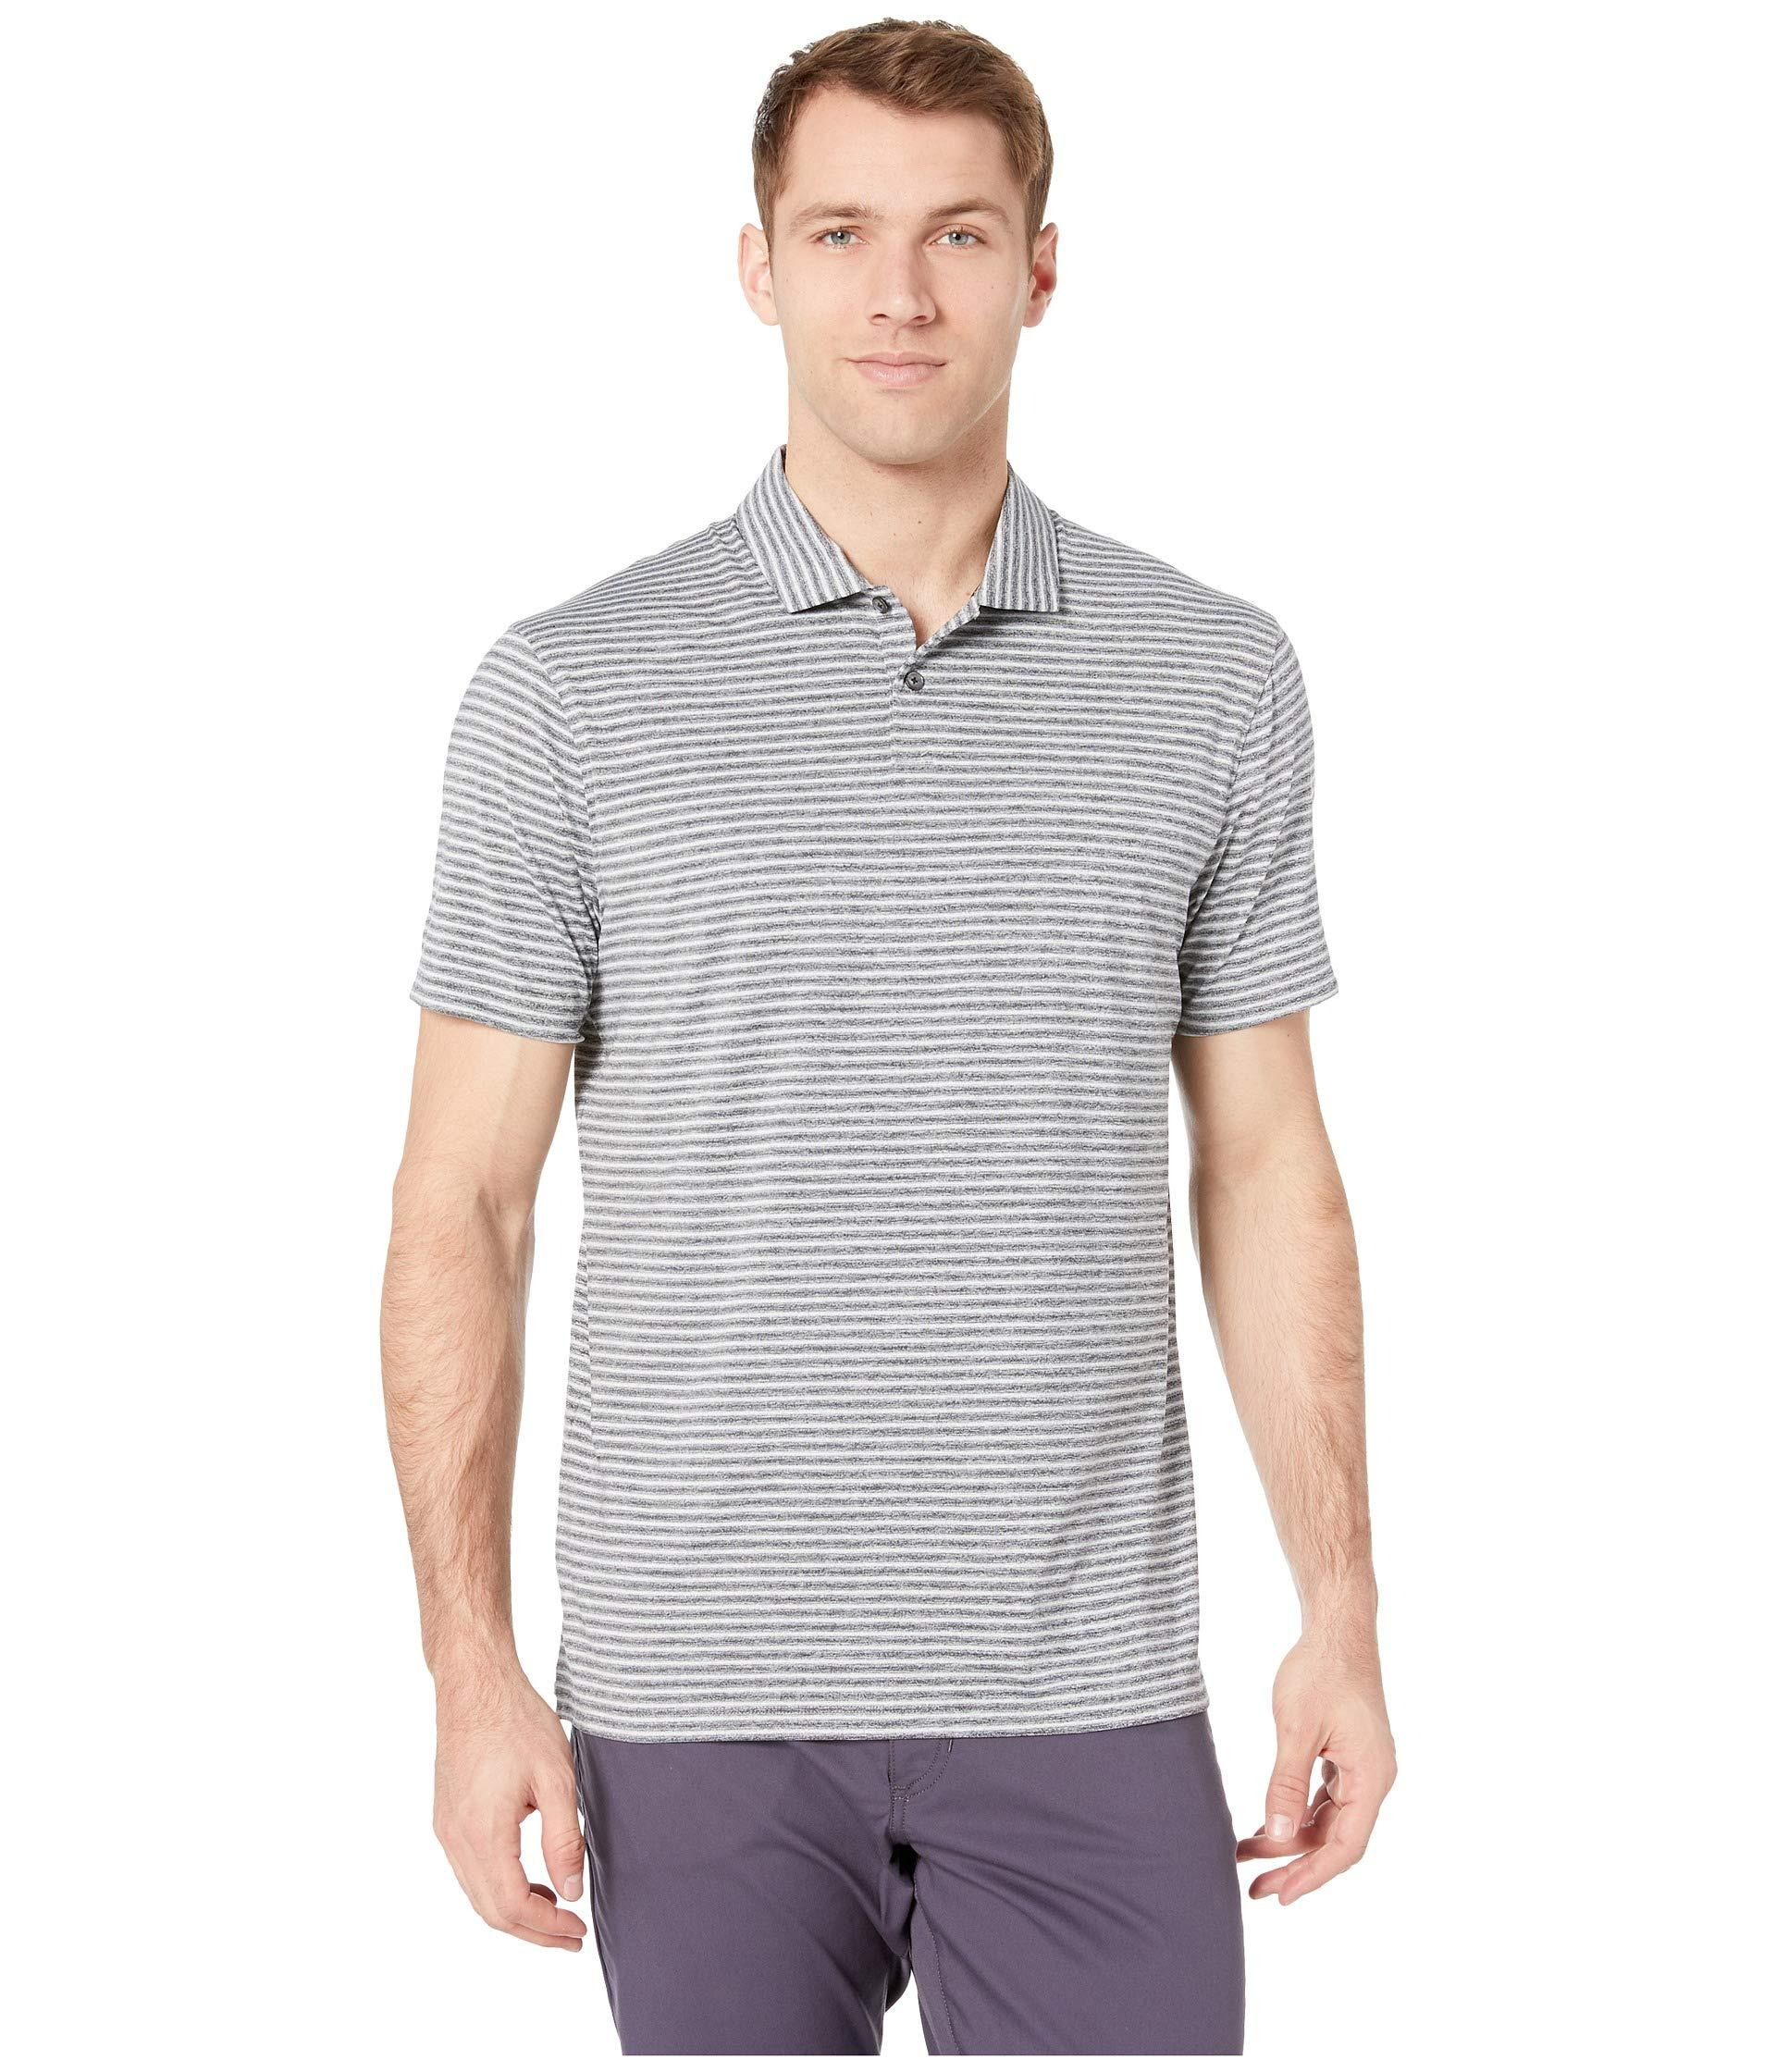 c071ac01 Lyst - Nike Dry Stripe Polo (black) Men's Clothing in Black for Men